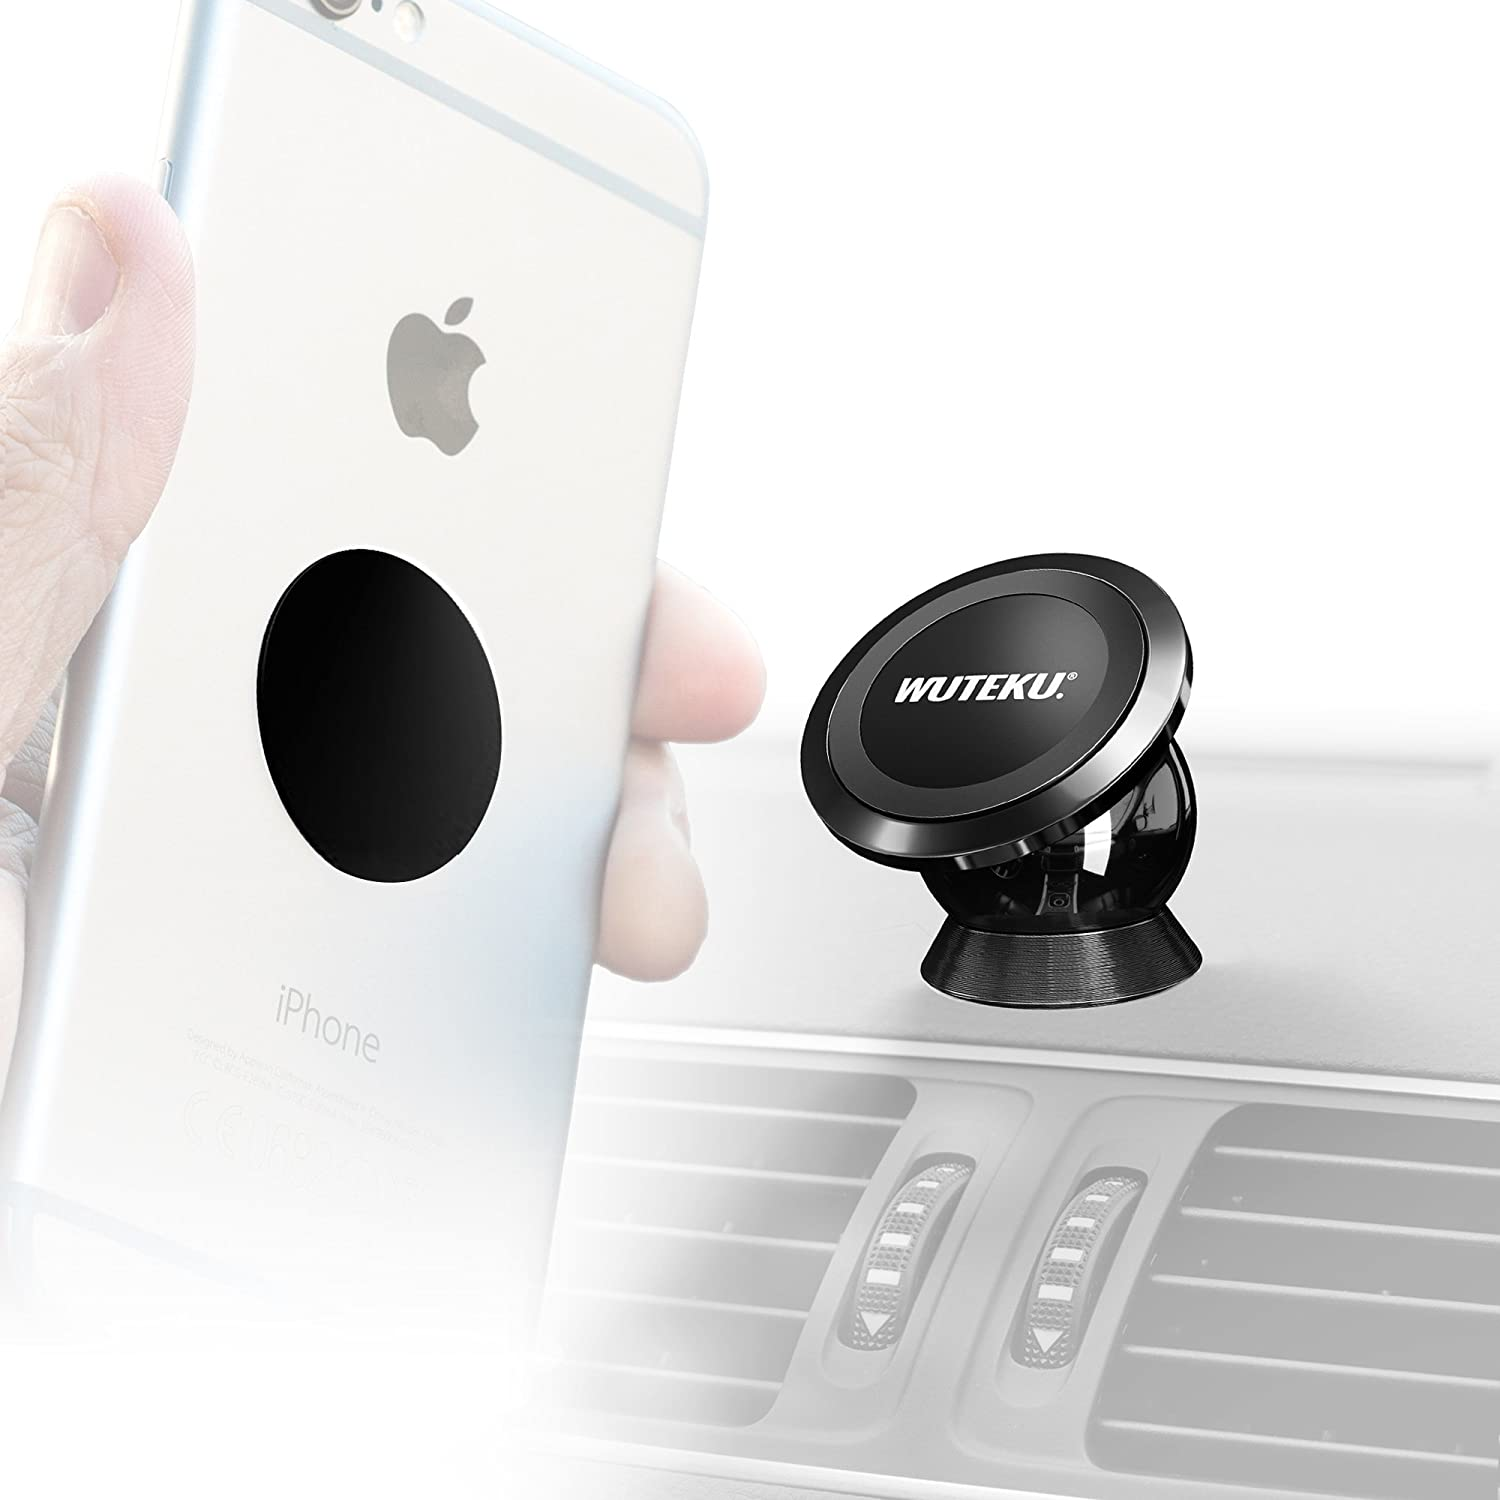 Wuteku UltraSlim Accessories Pack for Magnetic Cell Phone Holder 2 x Large Metal Discs Includes 2 x Large Metal Plates 2 x Standard Metal Discs 6 x 3M Mount Adhesives